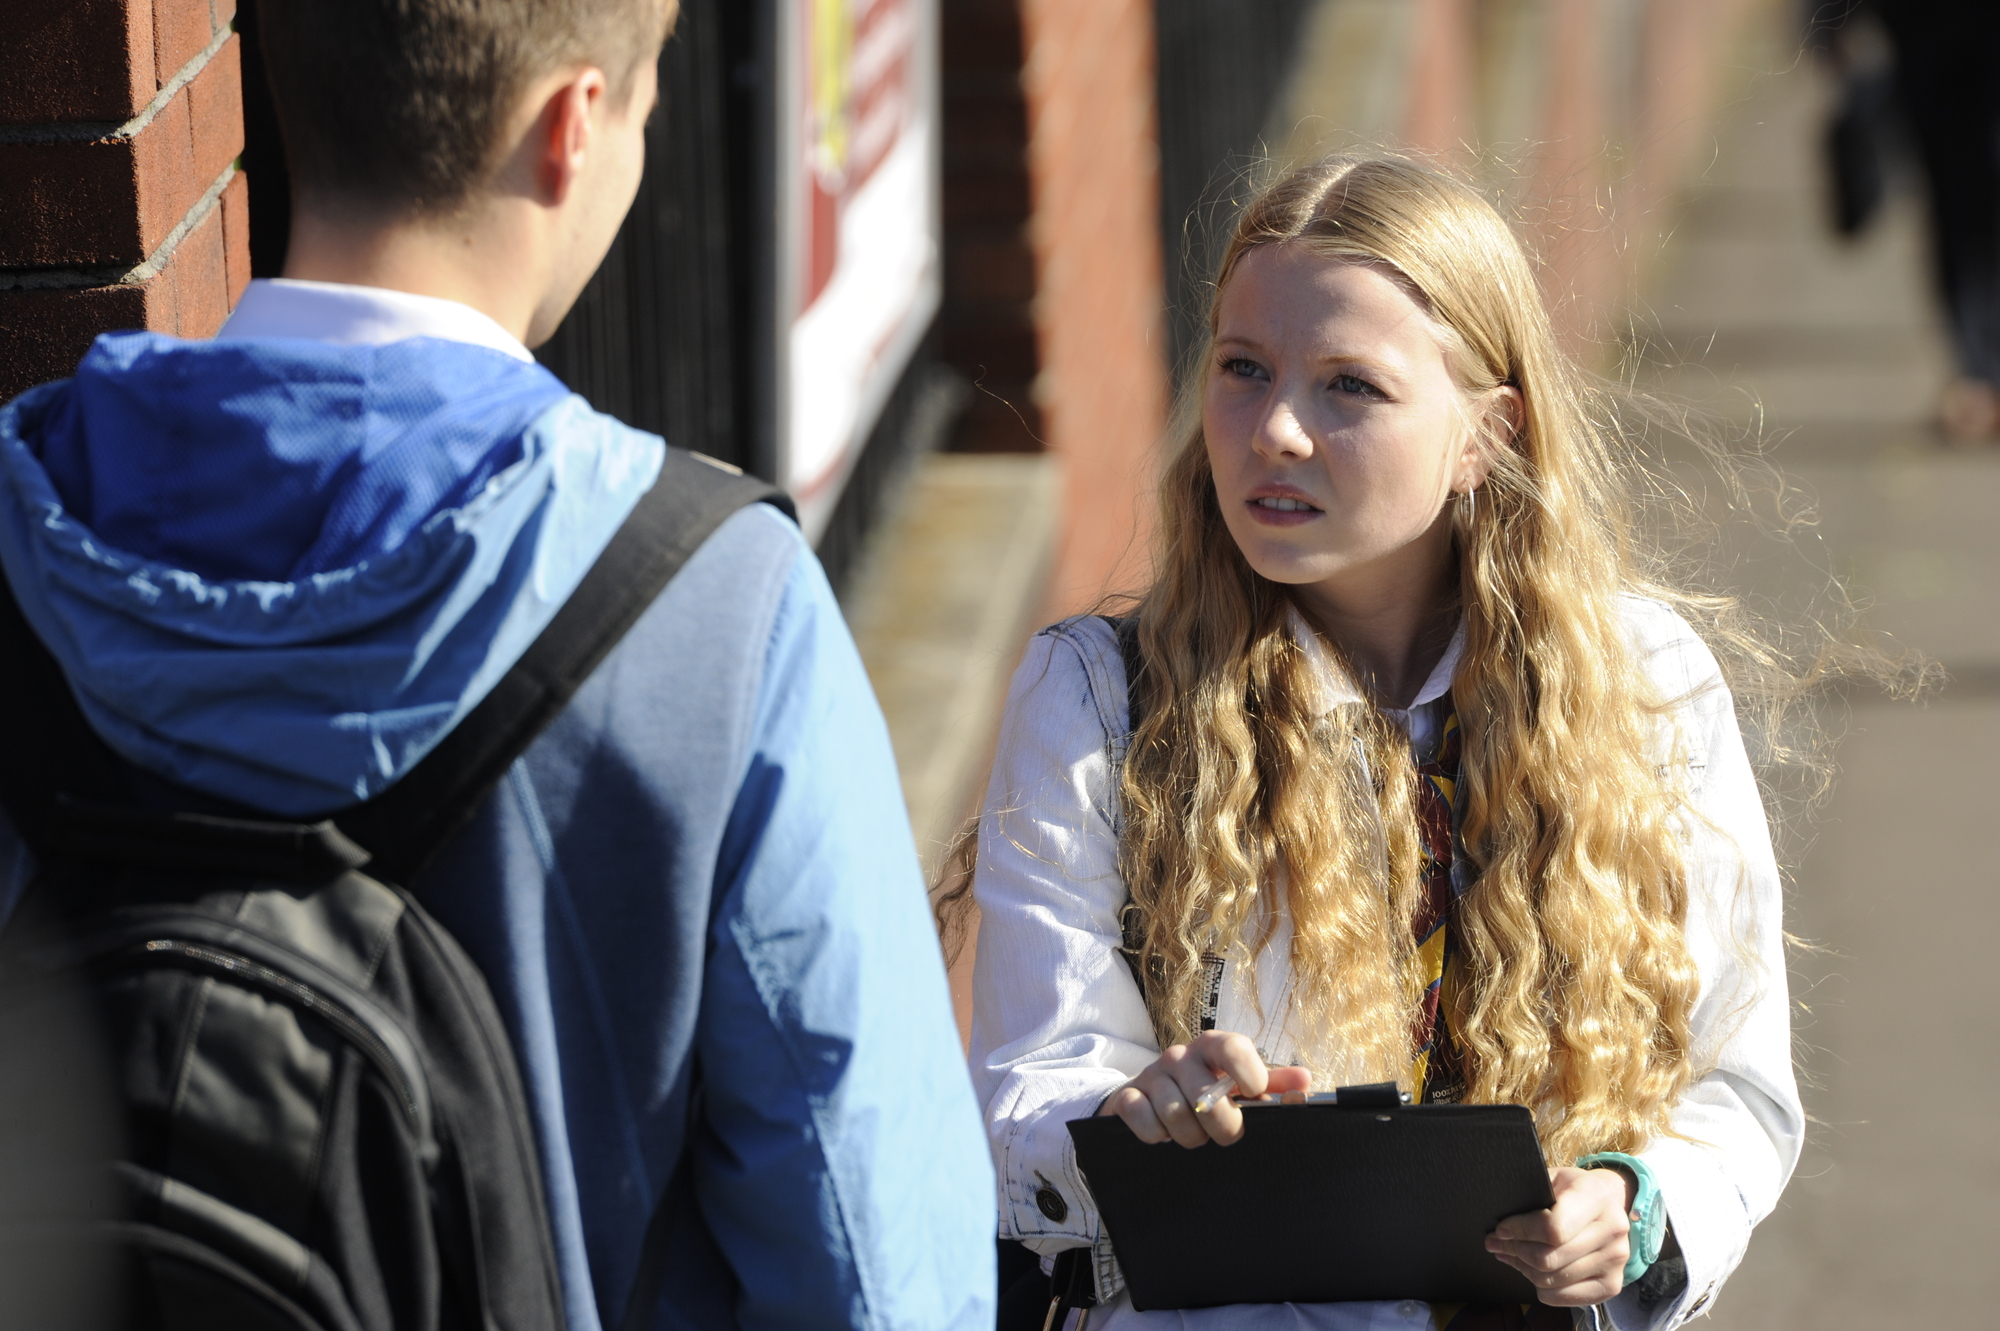 Waterloo Road final series continues: 11 teasers from episode 19